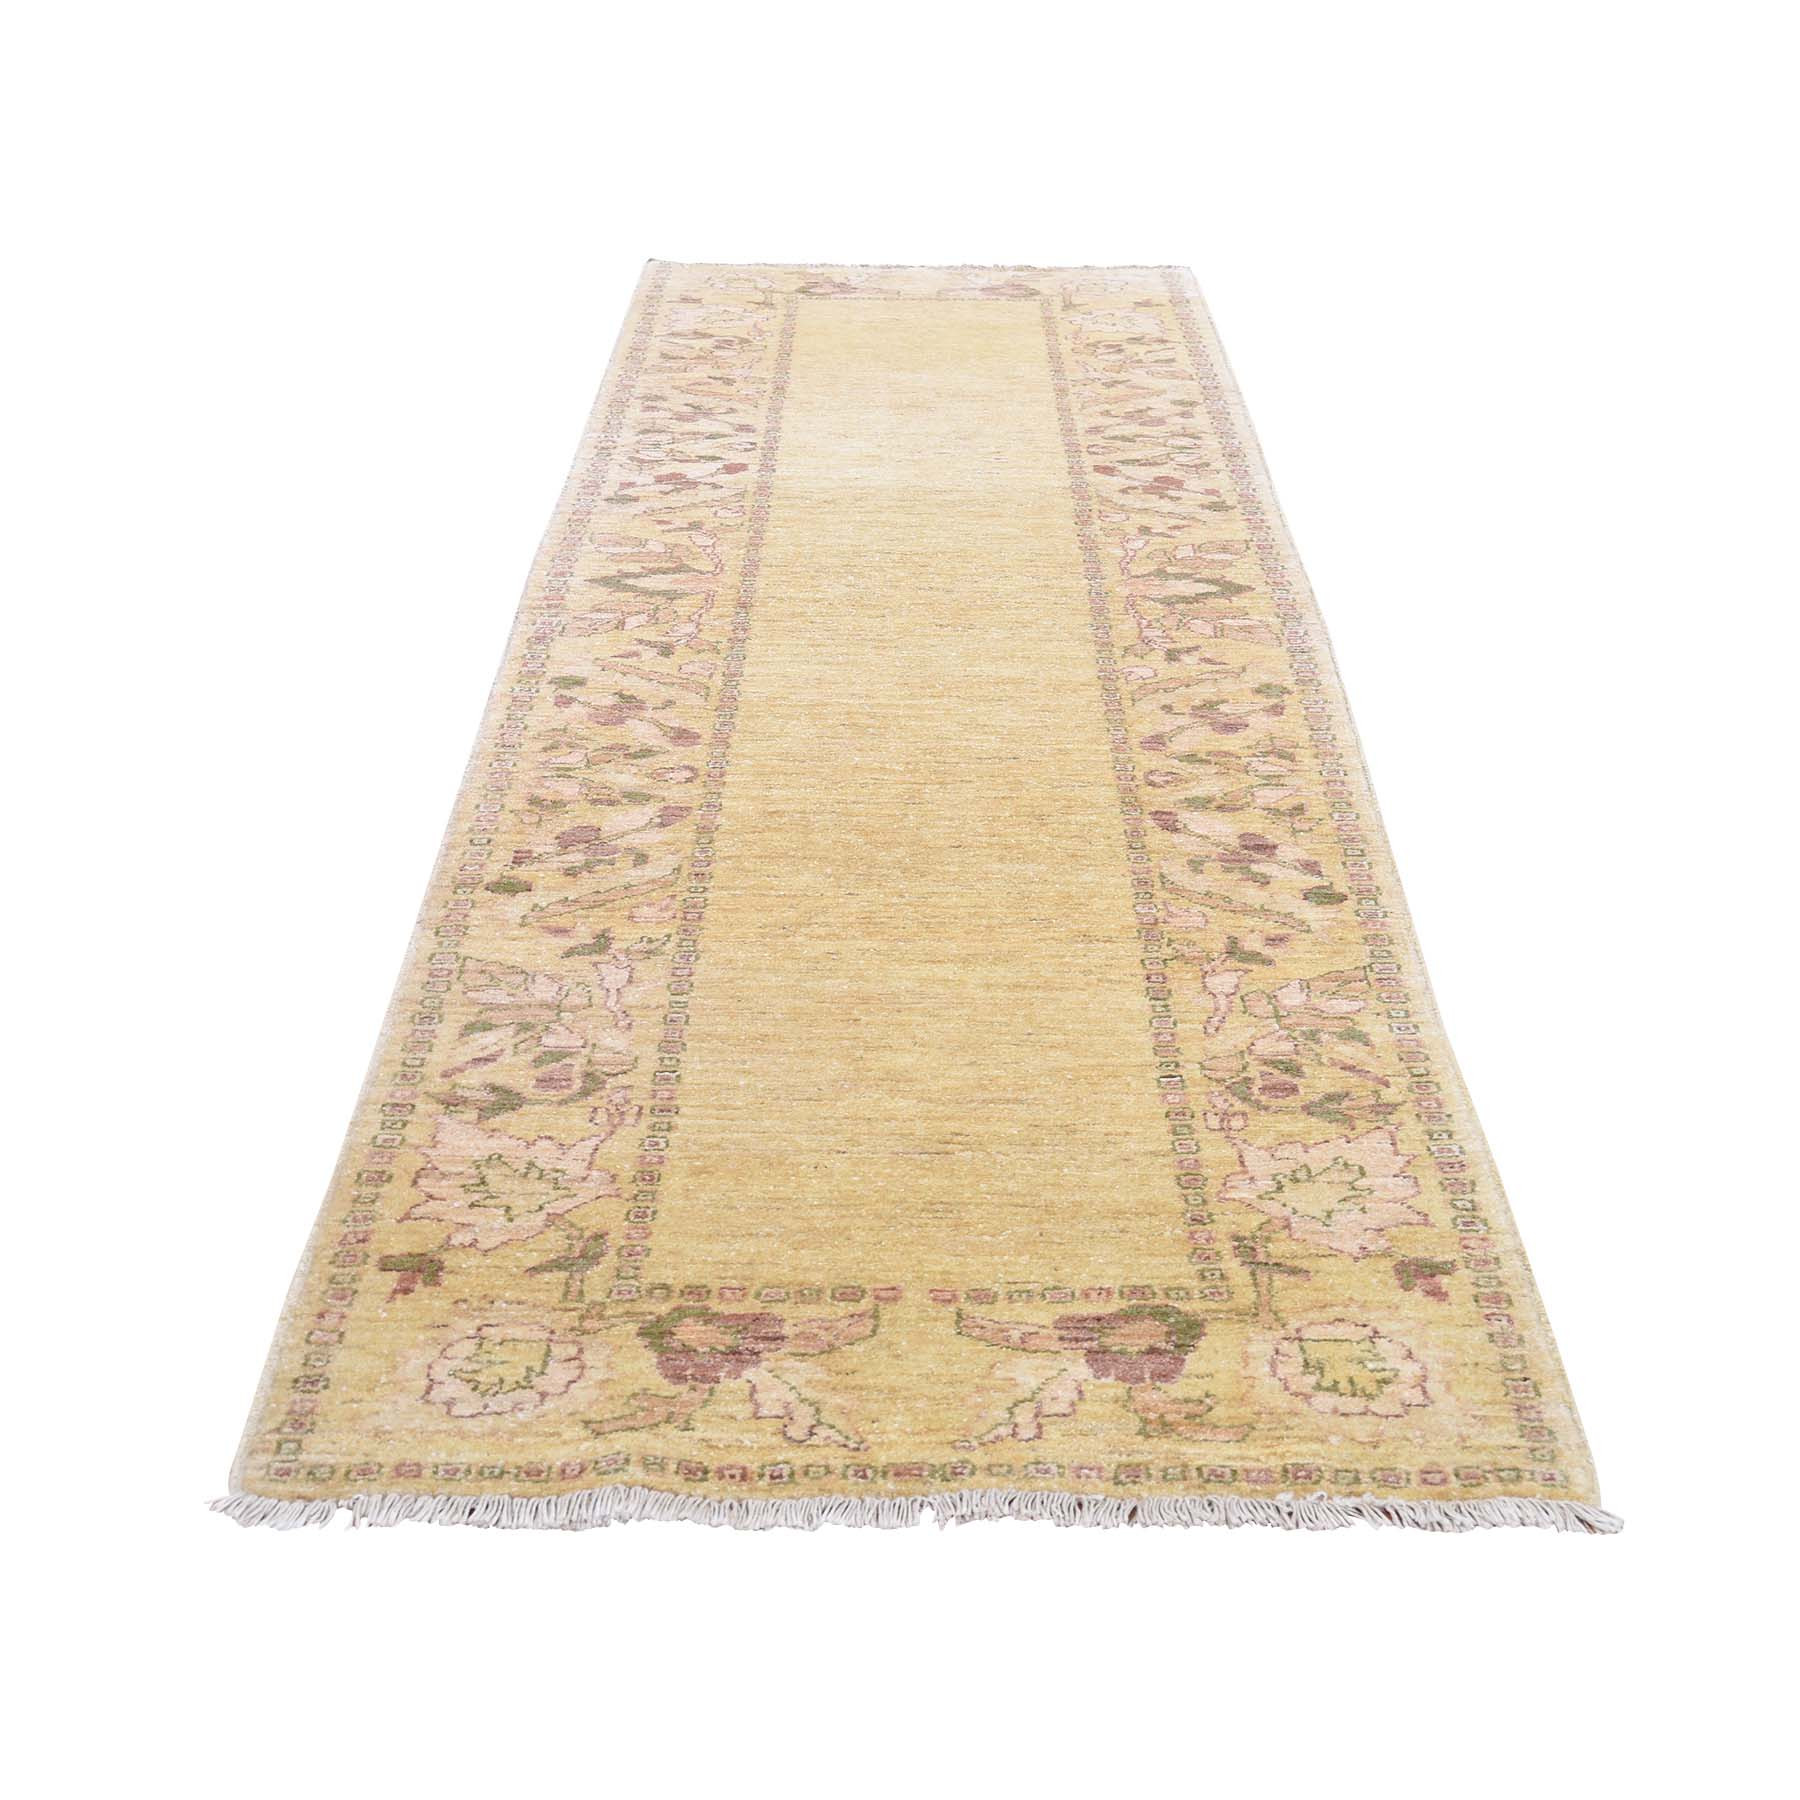 "2'10""X9'8"" Pure Wool Peshawar With Plain Field Hand-Knotted Runner Oriental Rug moadd60d"